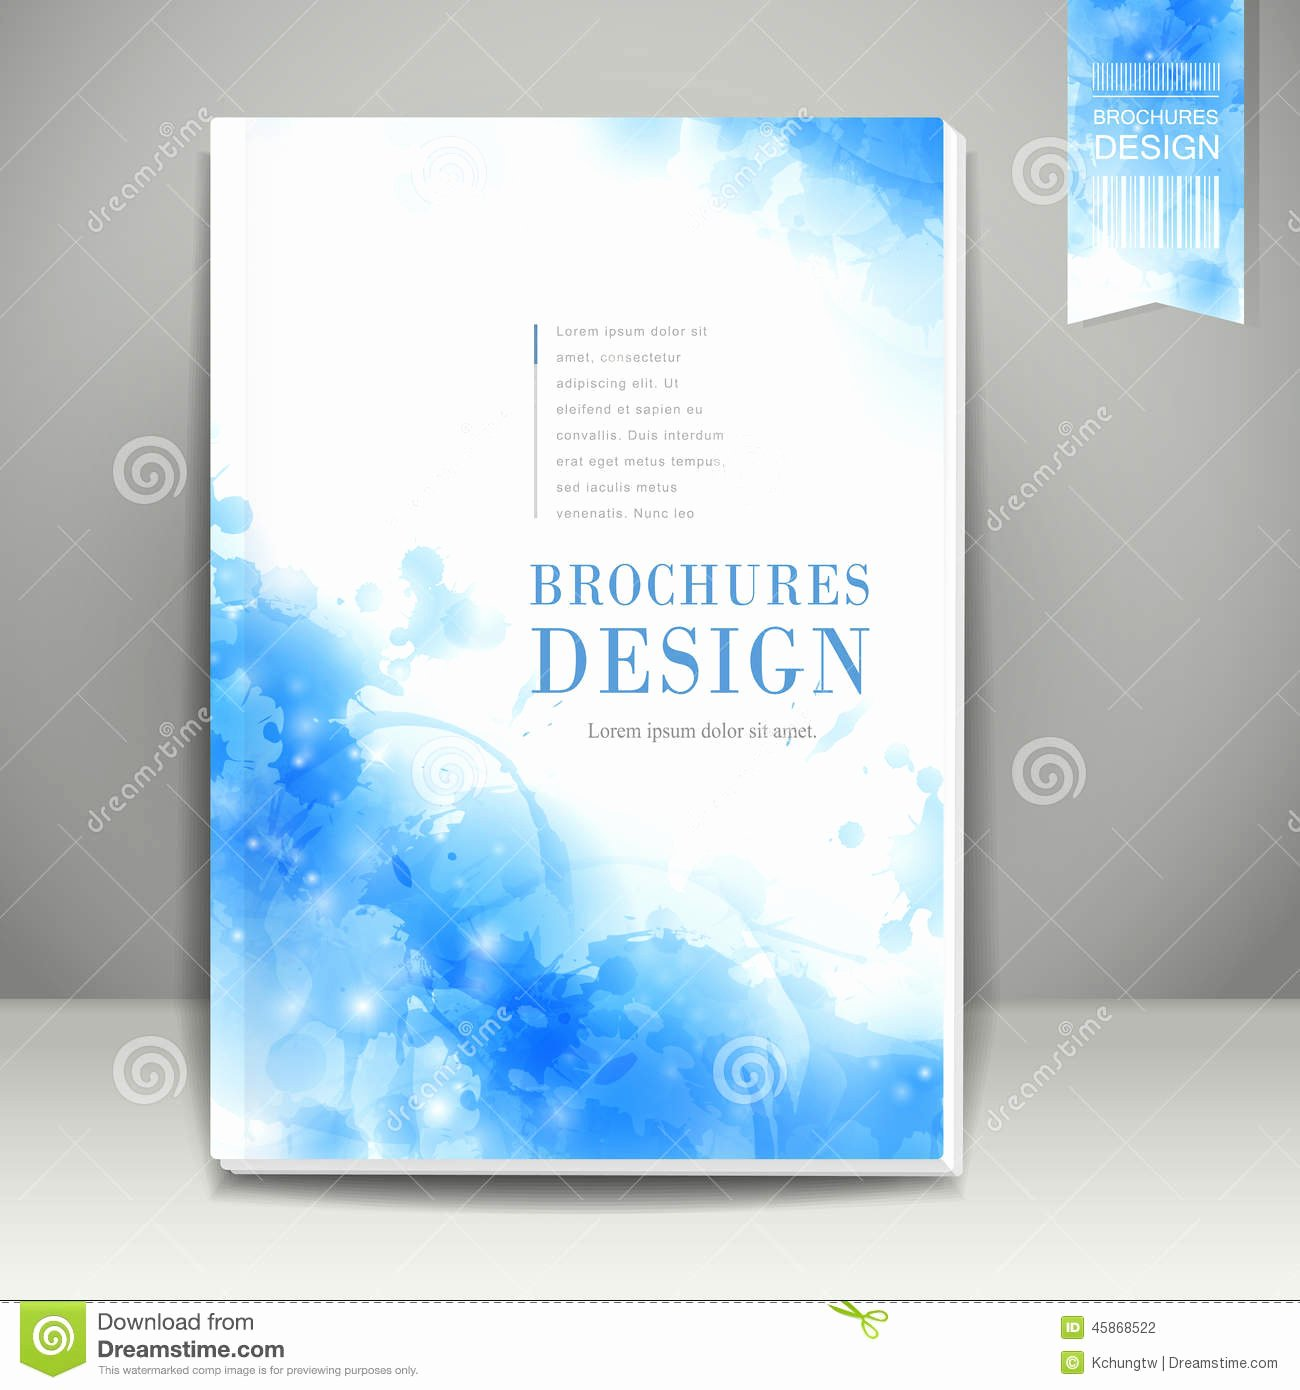 Watercolor Style Background Design for Book Cover Stock